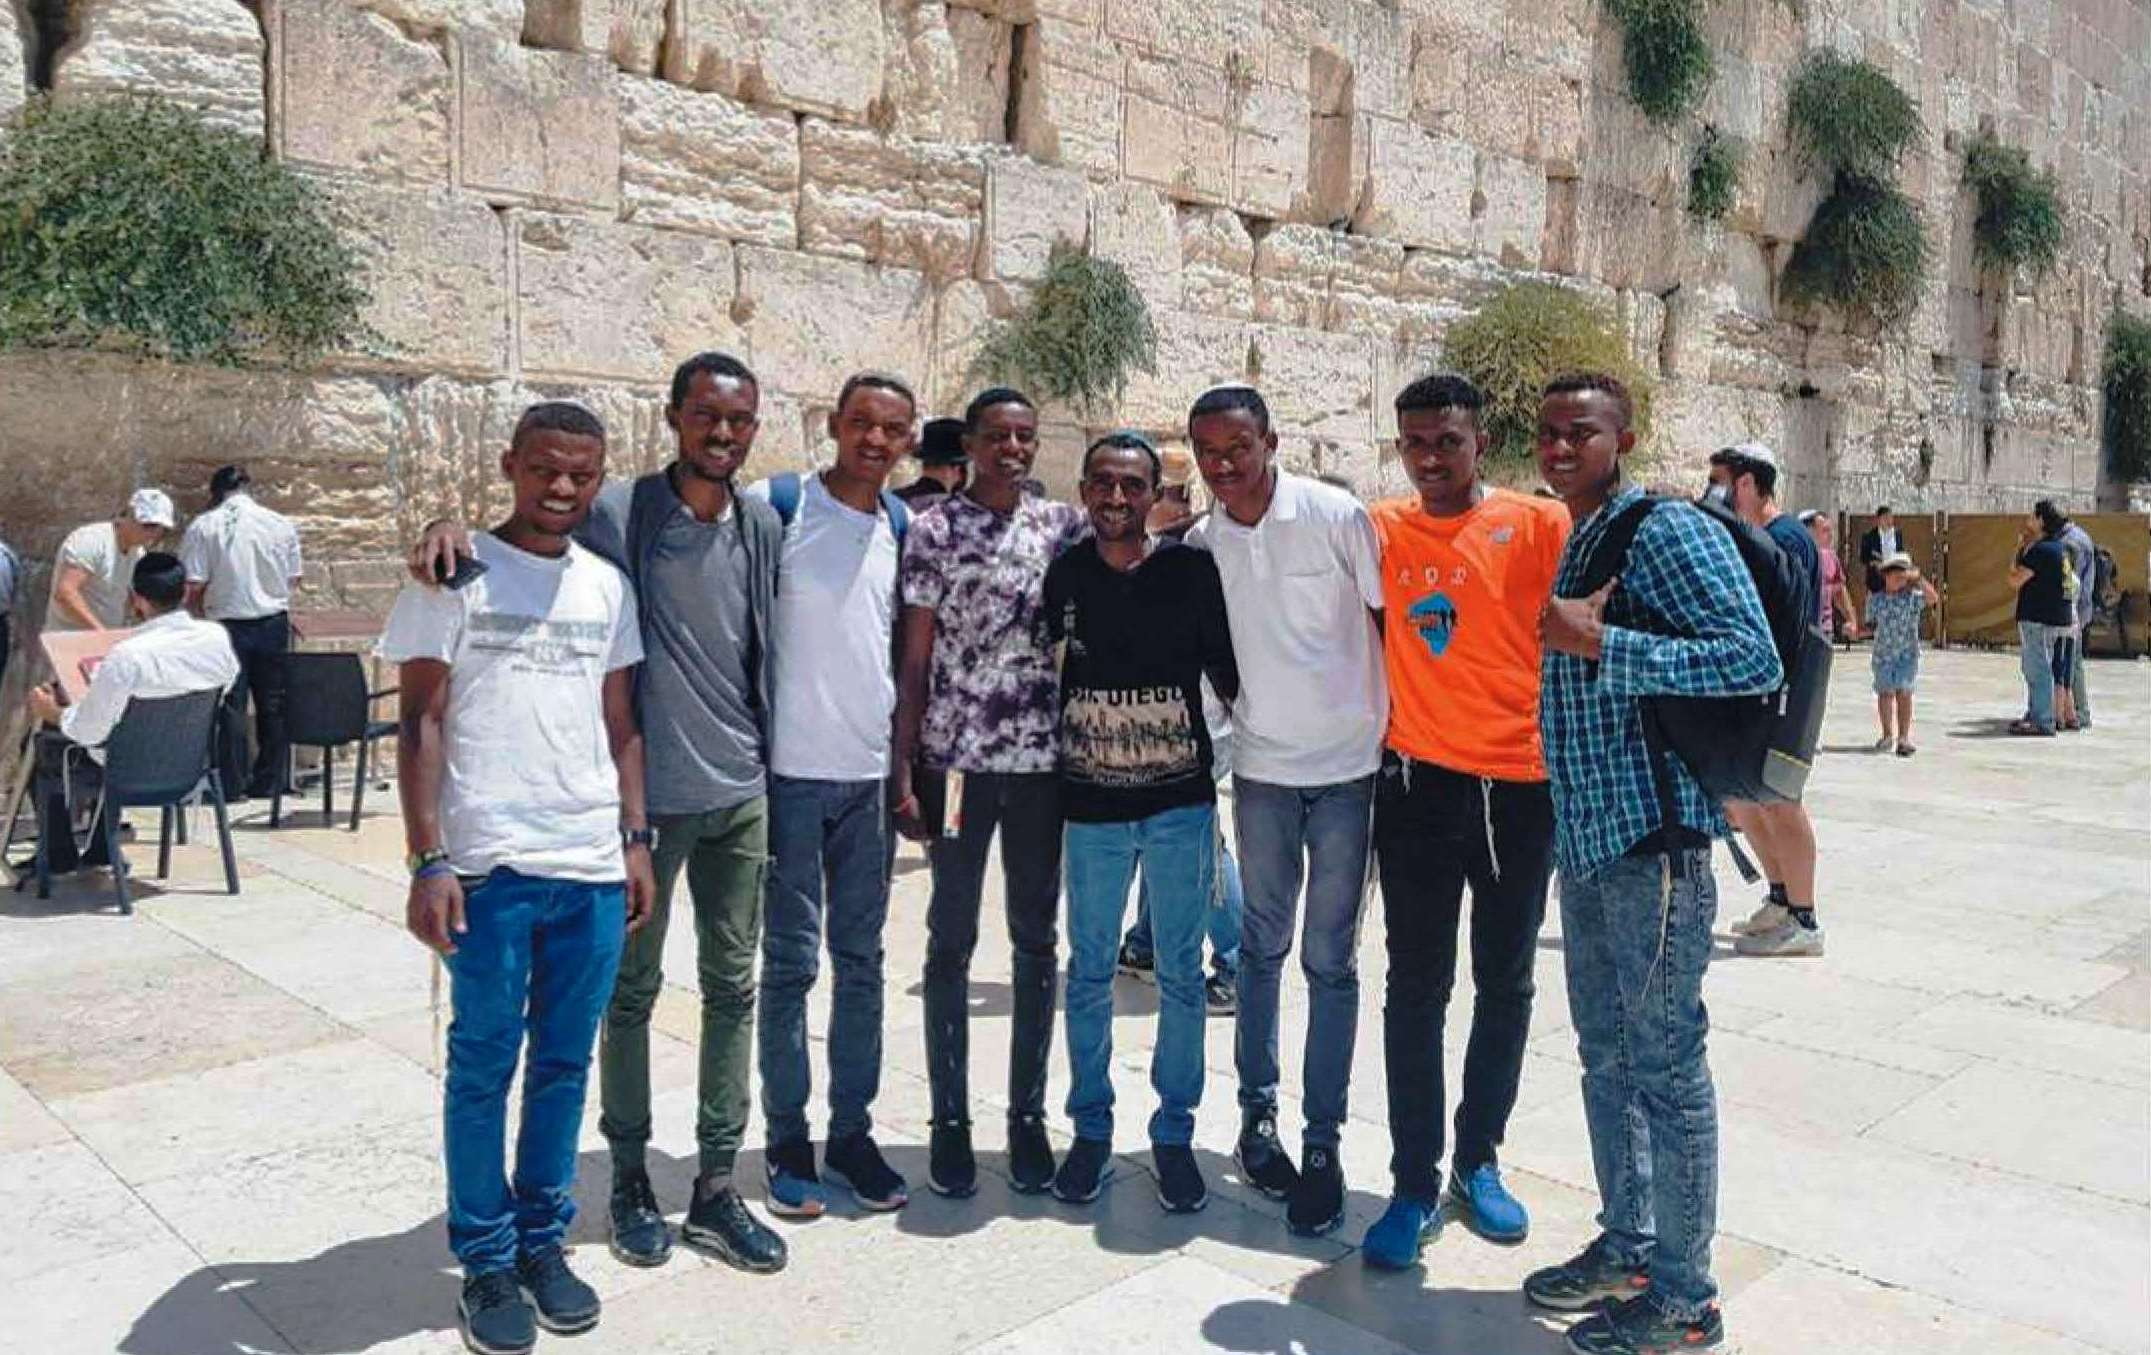 Ethiopian Group at the Kotel